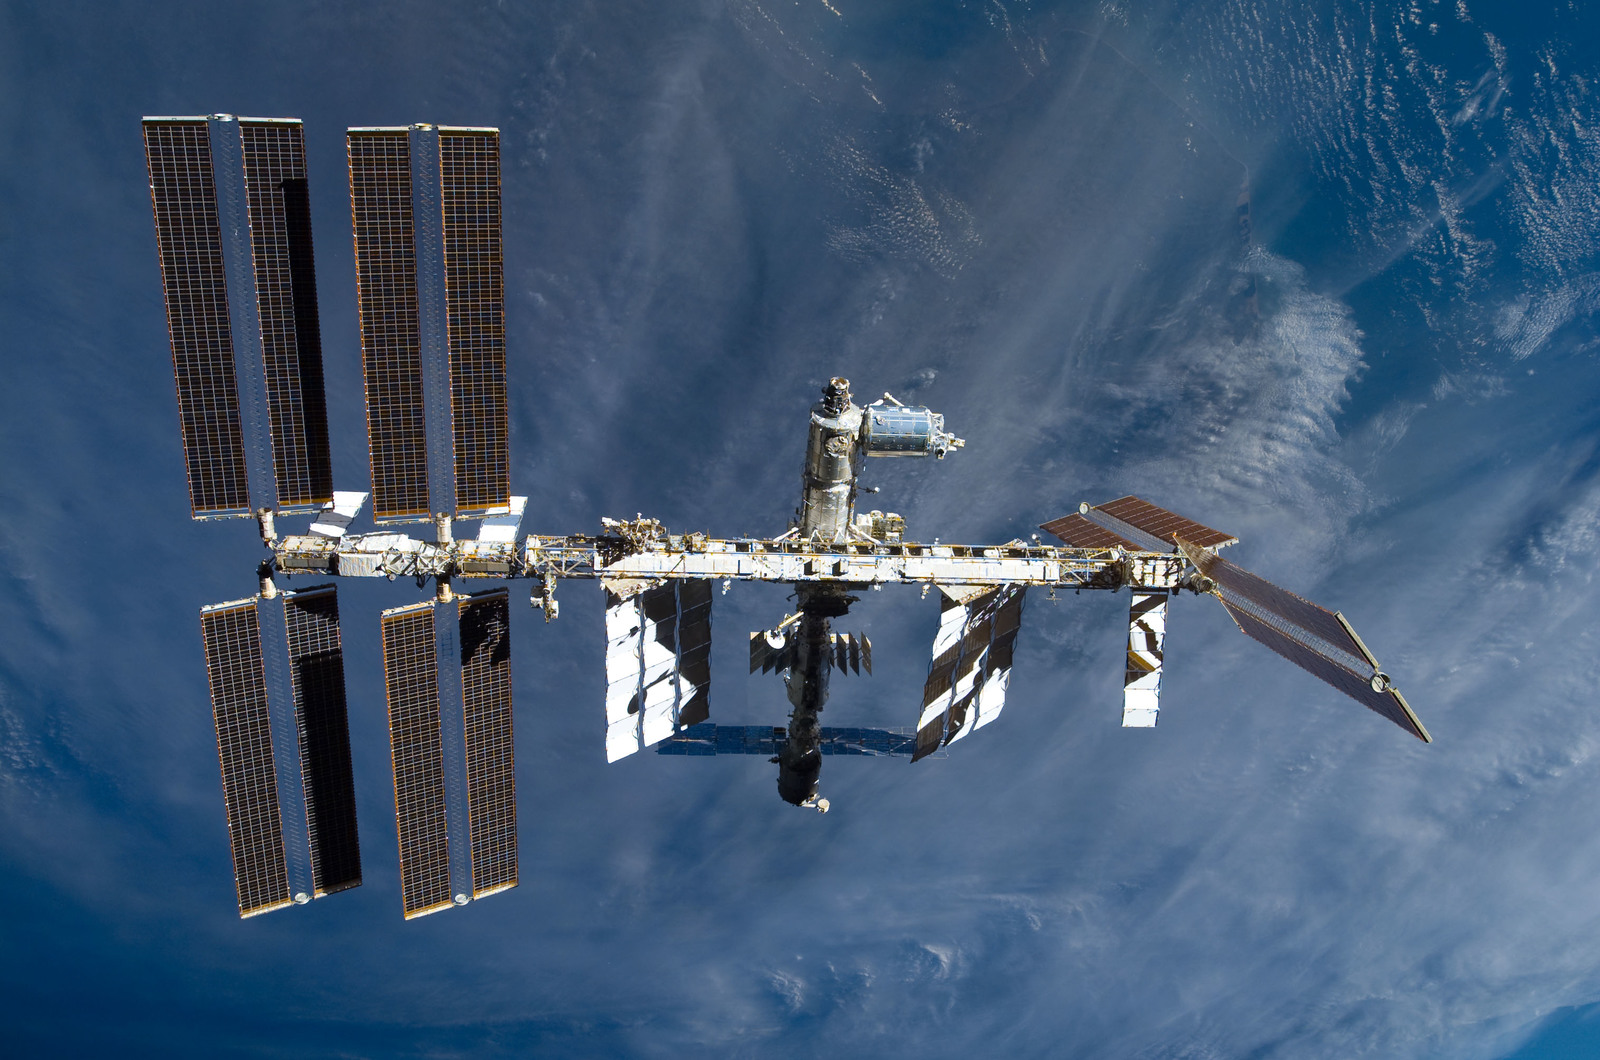 S122E009887 - STS-122 - View of ISS after STS-122 Undocking